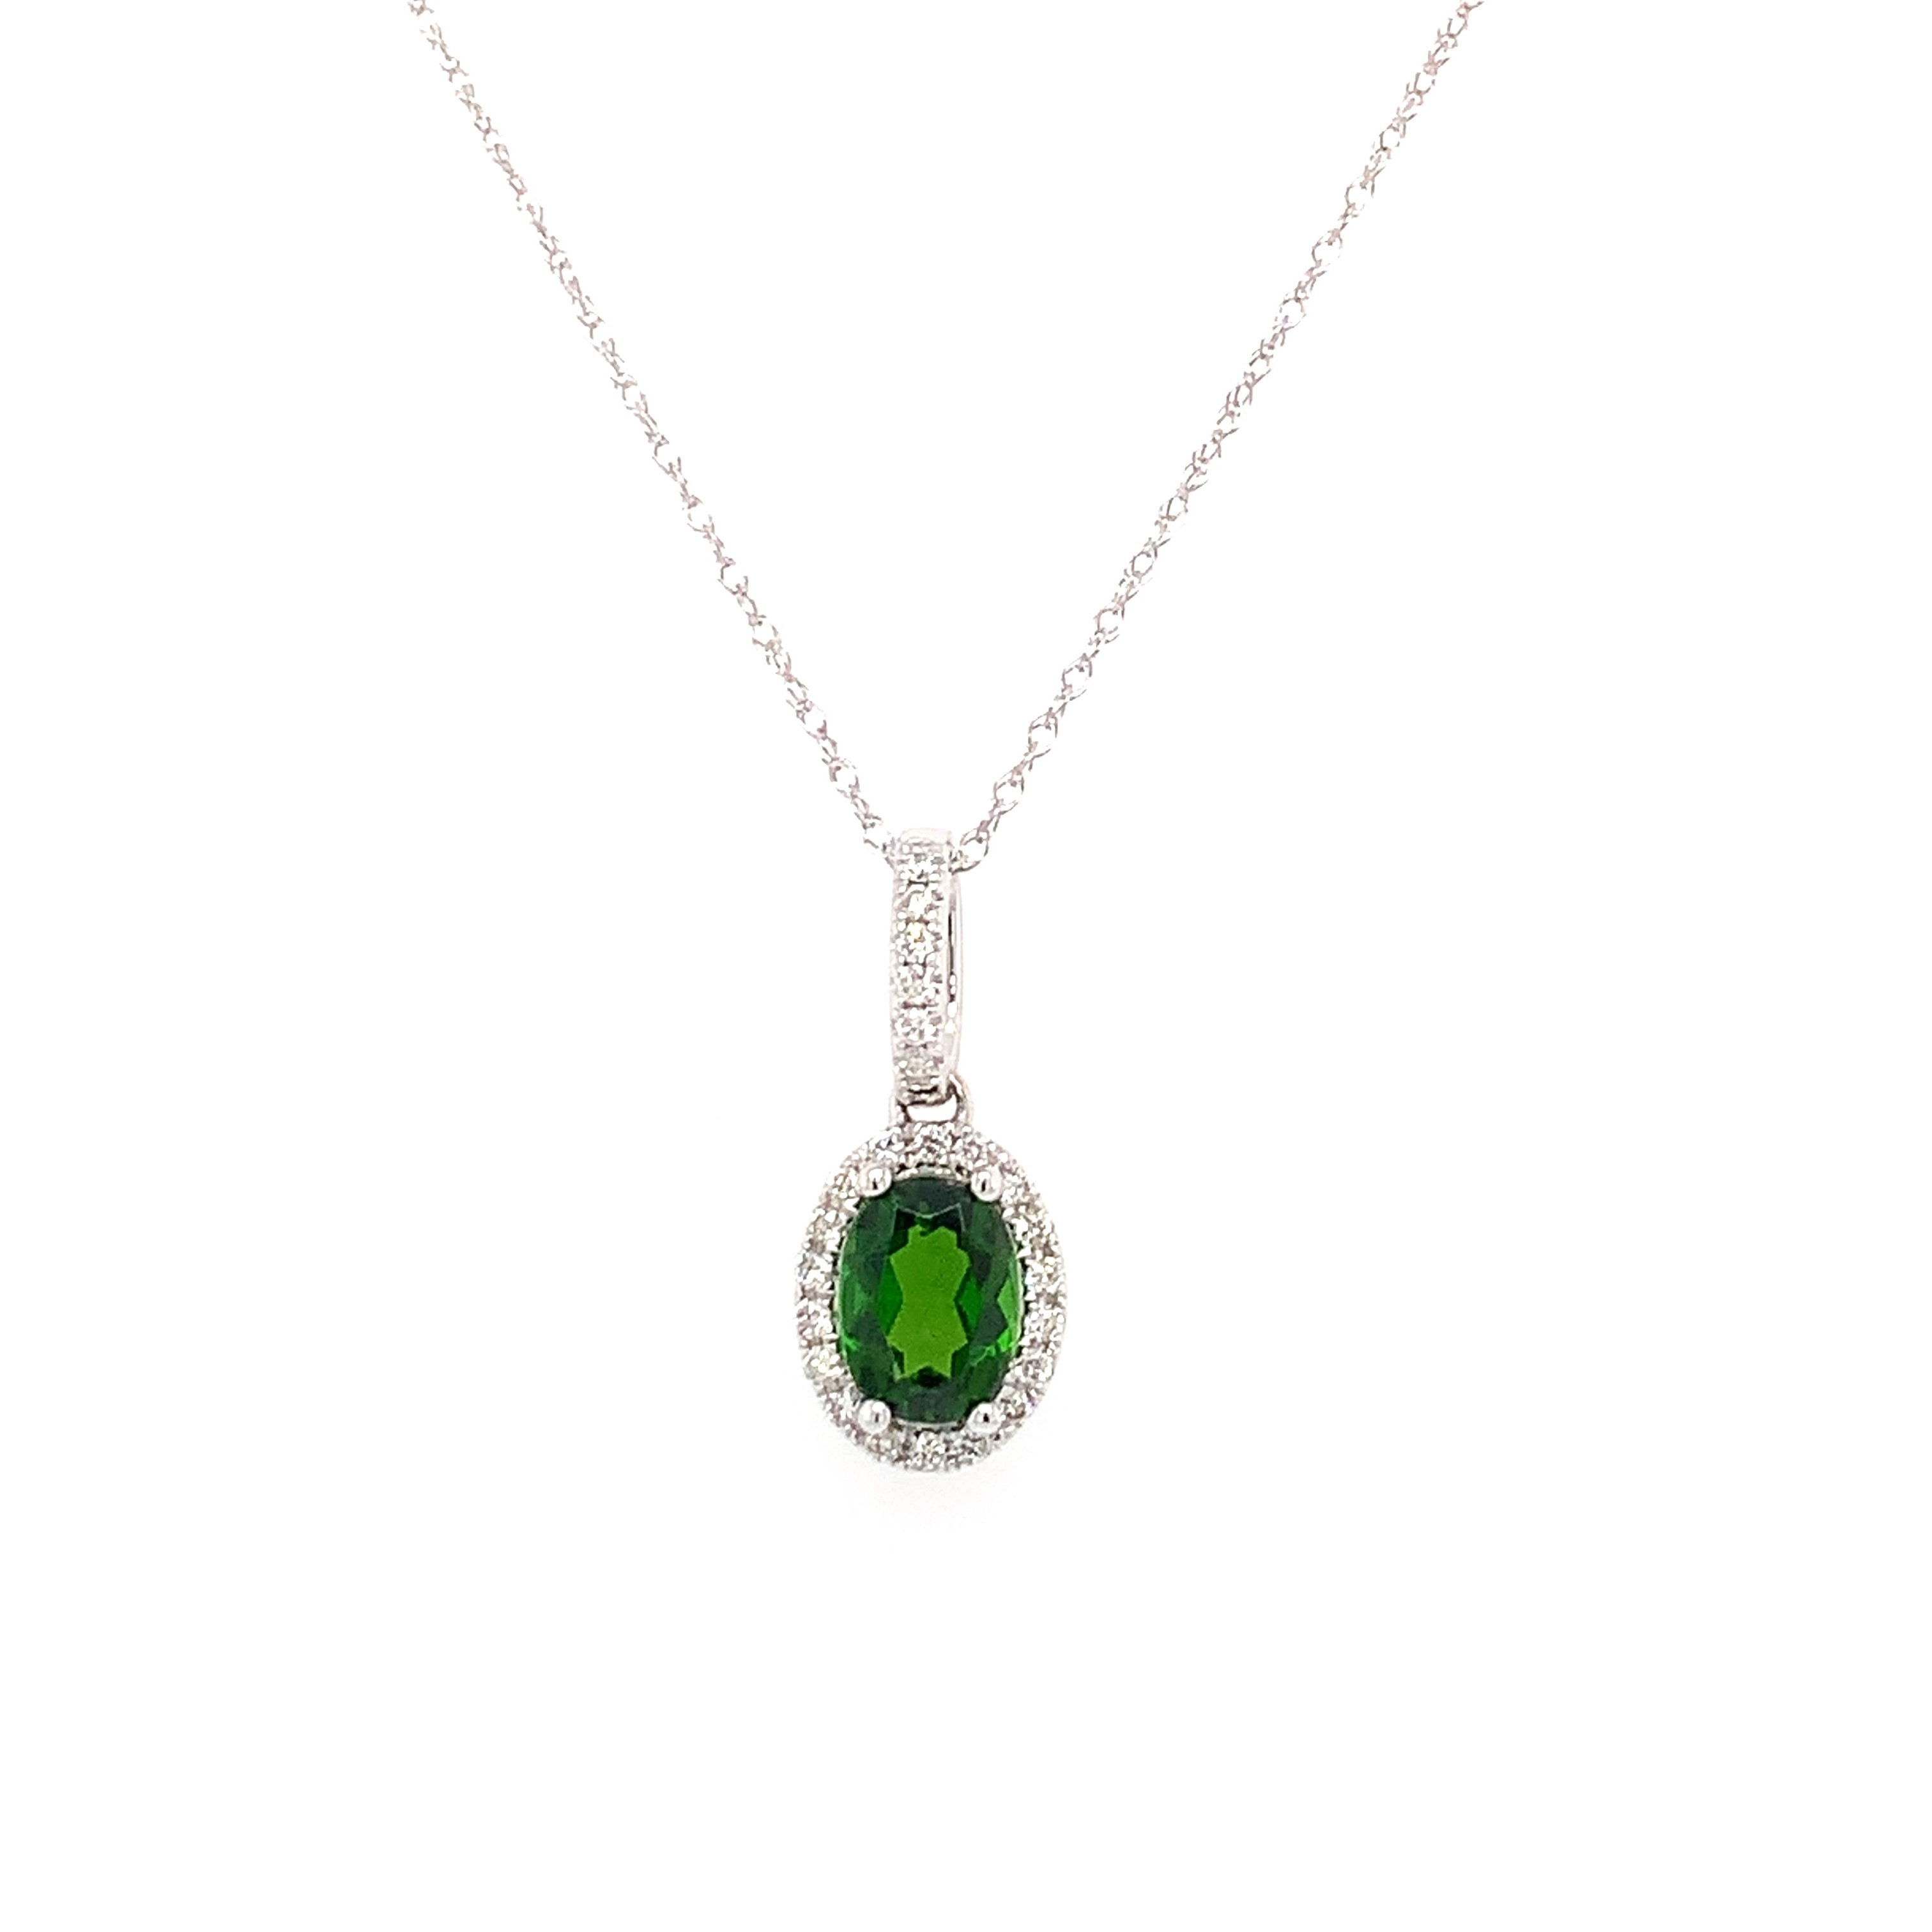 White Gold Chrome Diopside Pendant Necklace